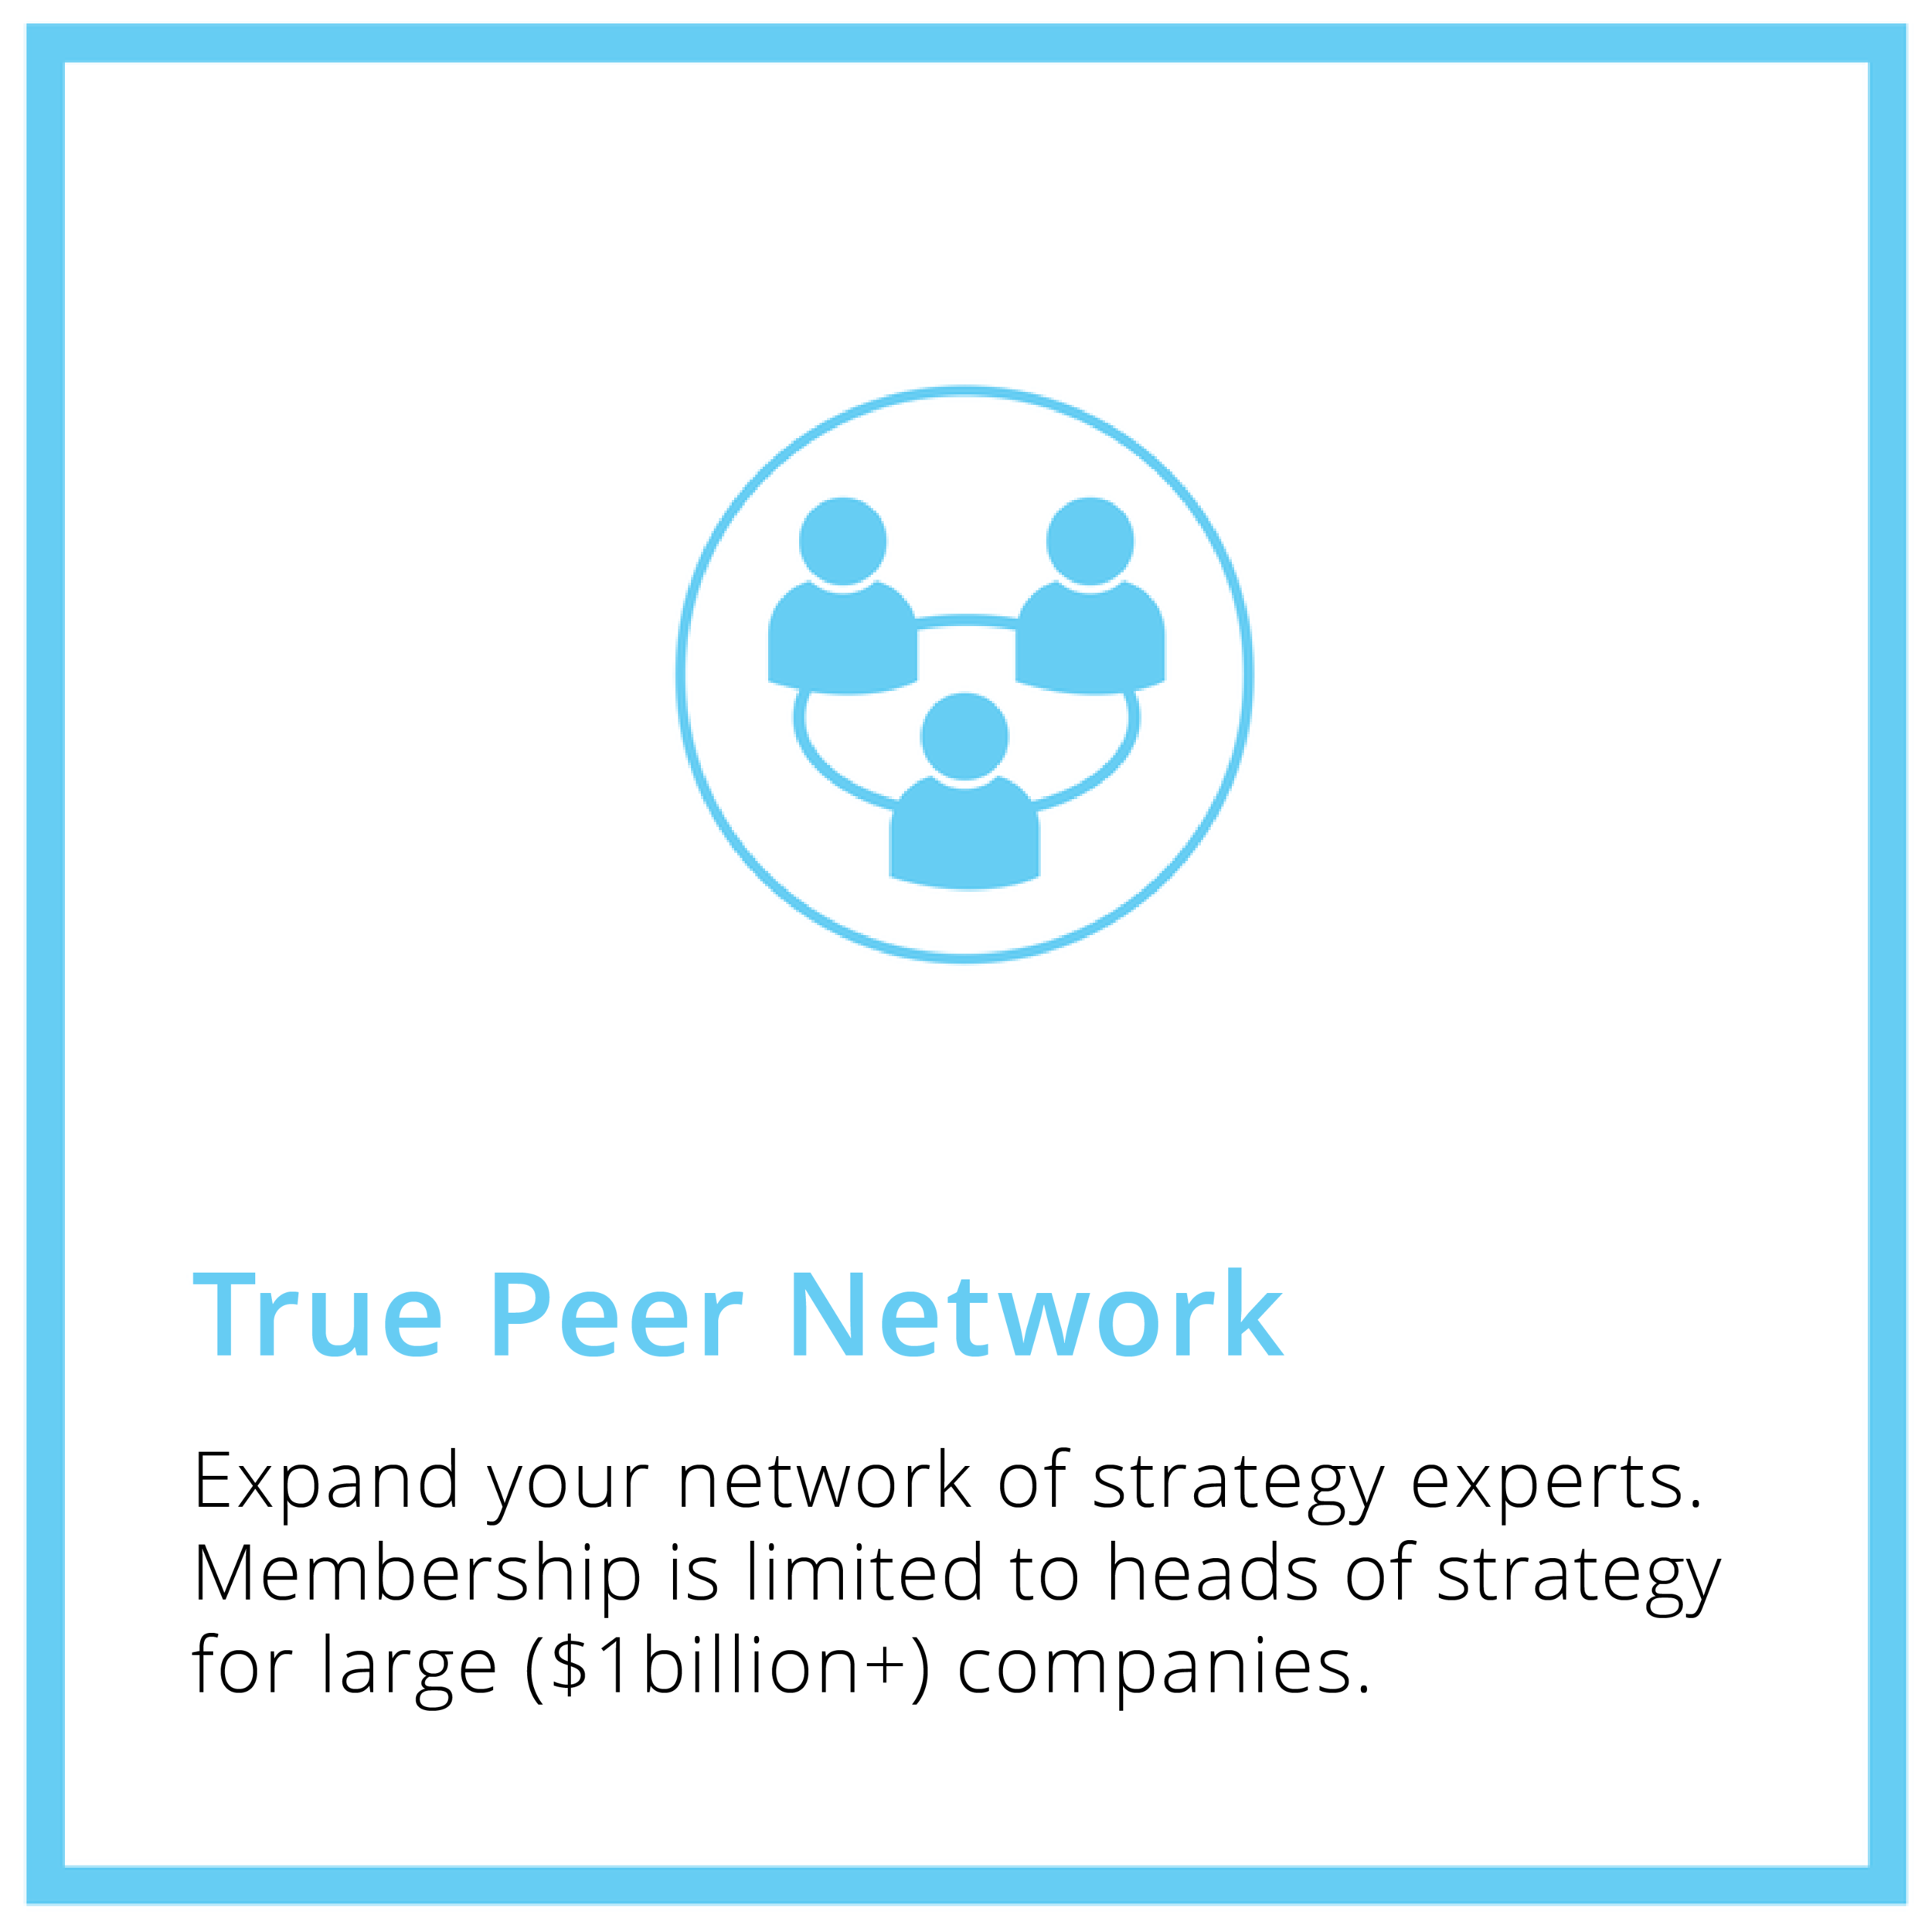 Differentiators_True Peer Network.png